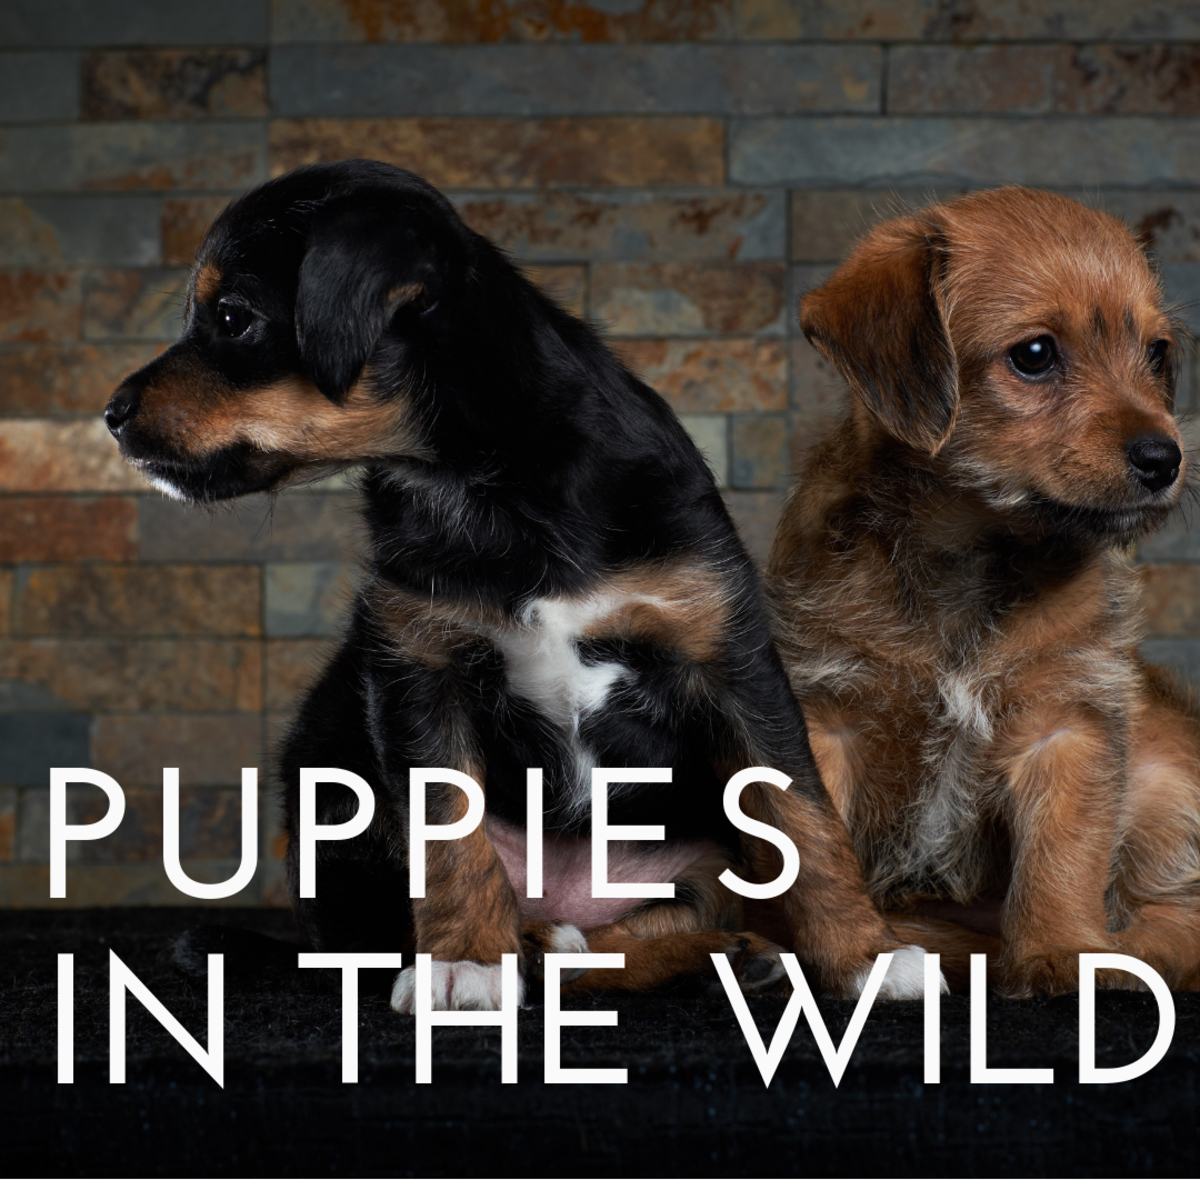 How Puppies Were Raised in the Wild